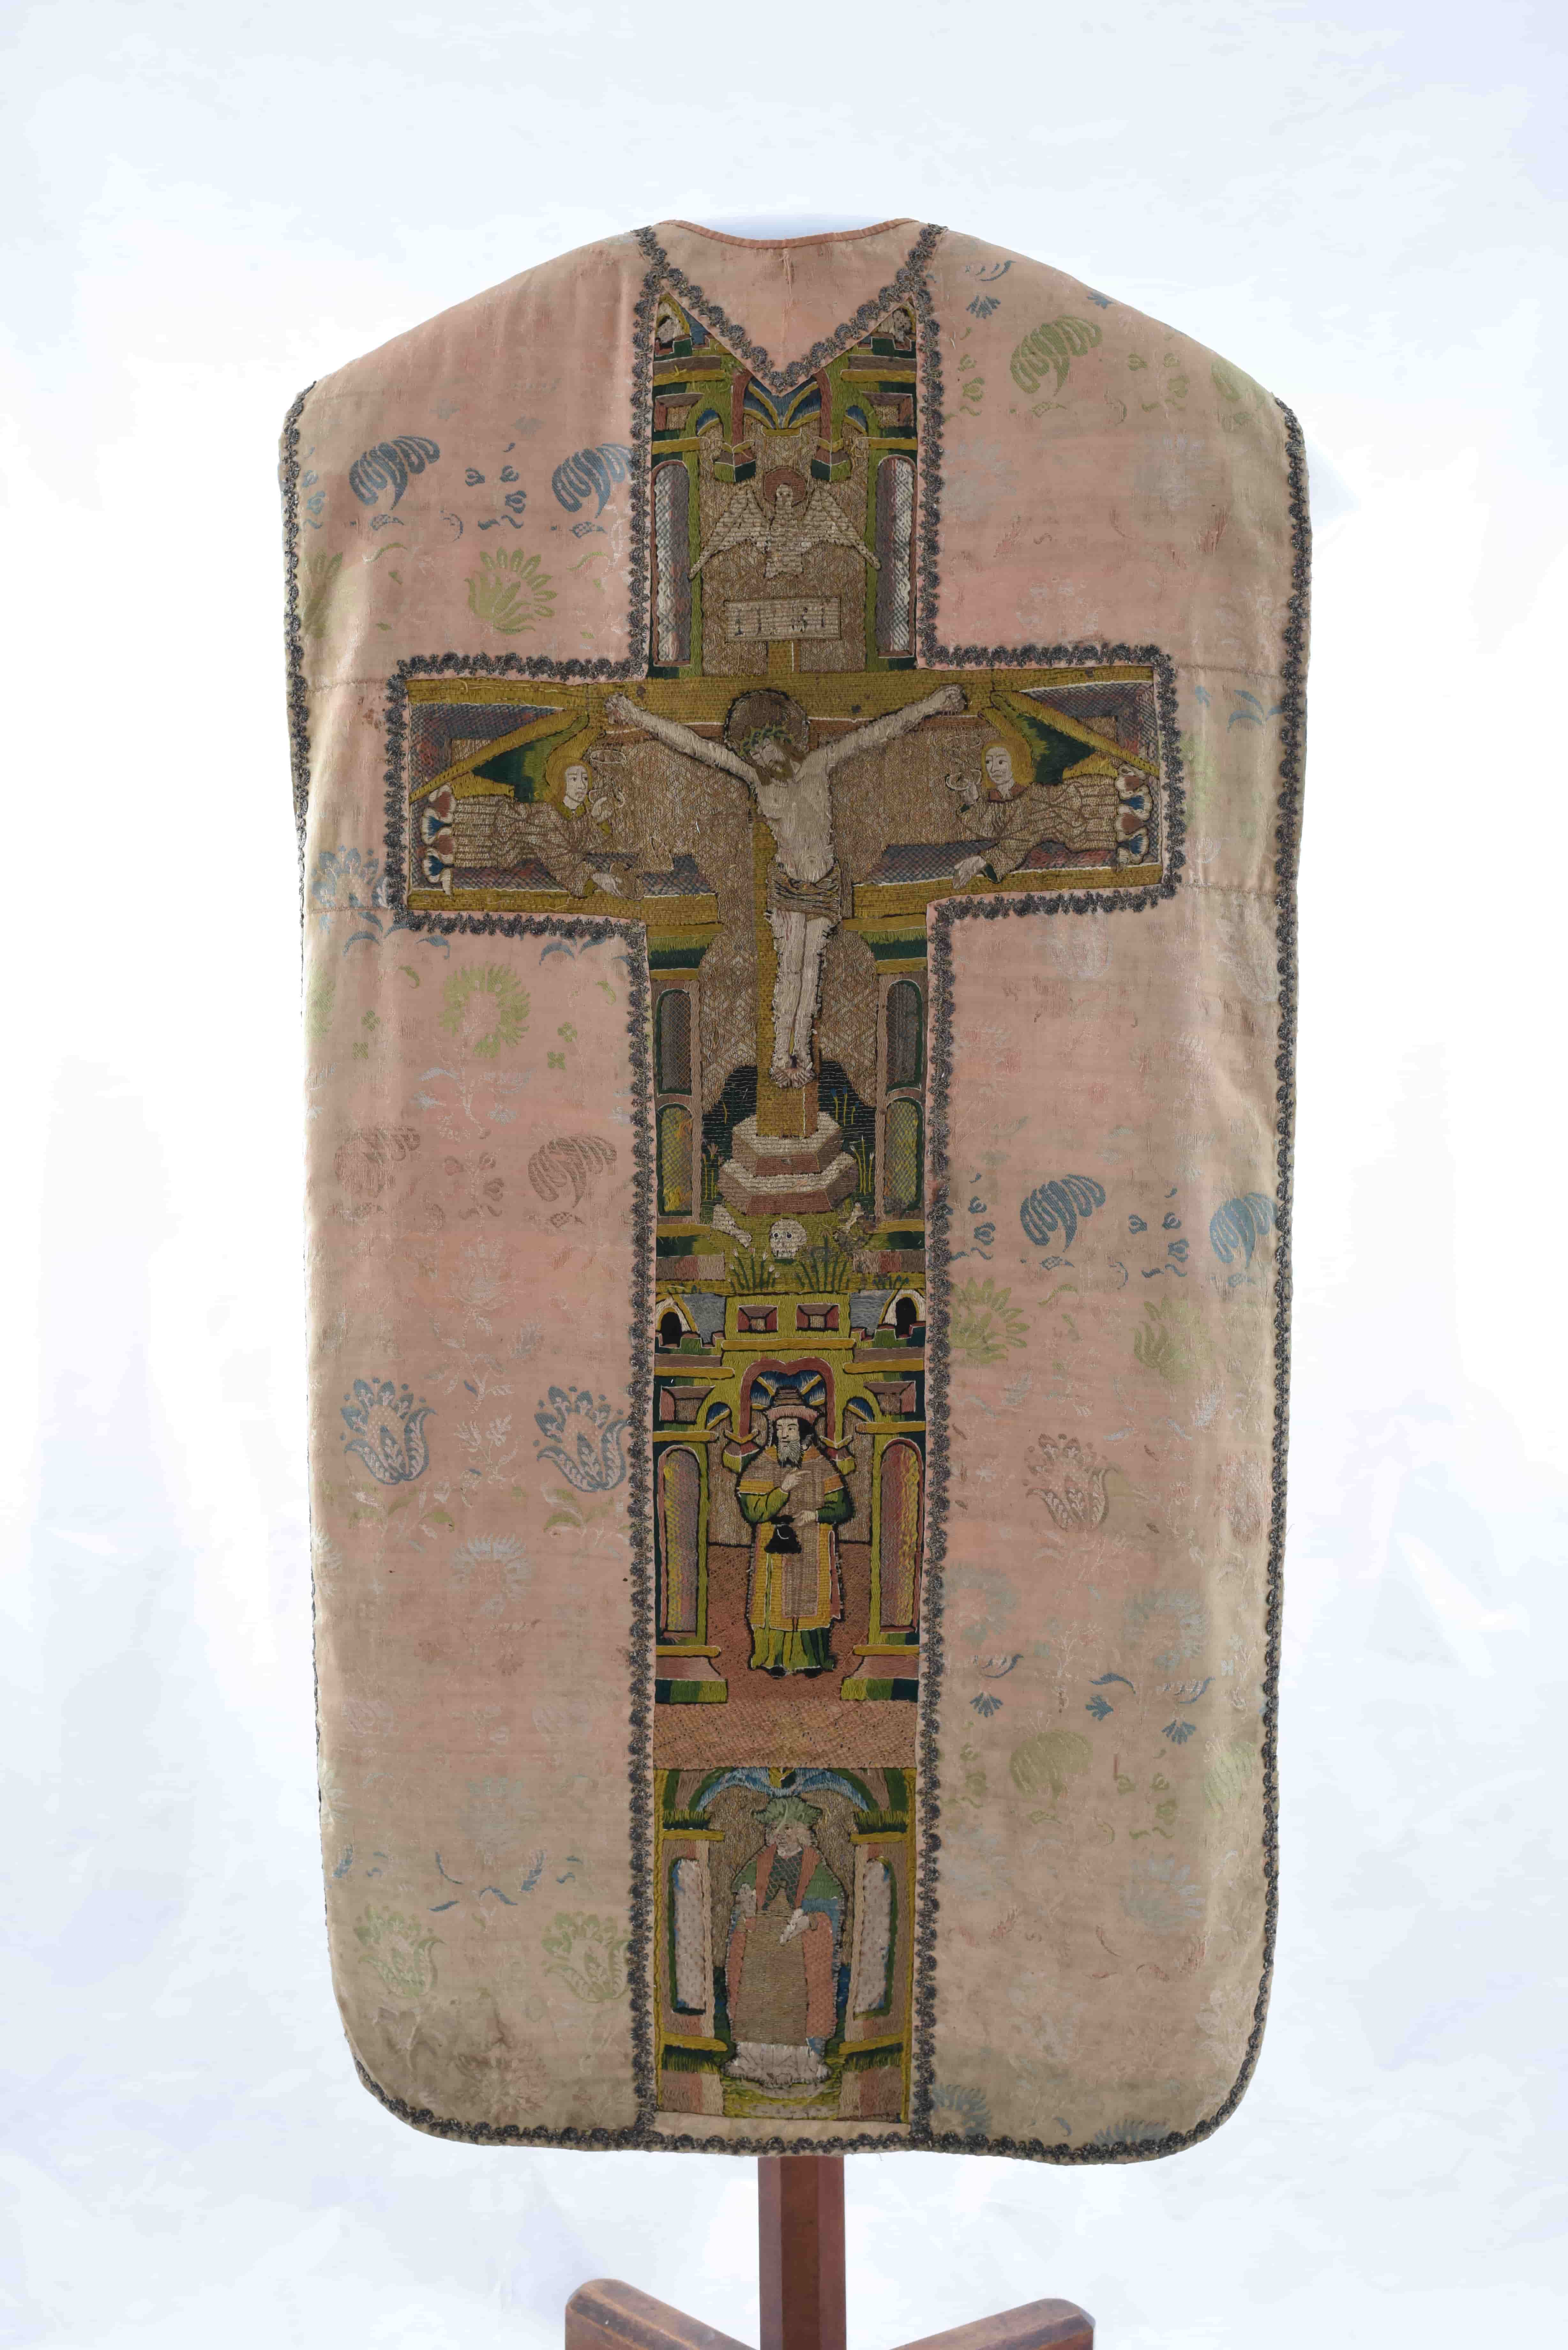 A vestment on a stand viewed from the back. The majority is made of a faded floral fabric and running down the length of the centre is a cross with an embroidered crucifixion scene